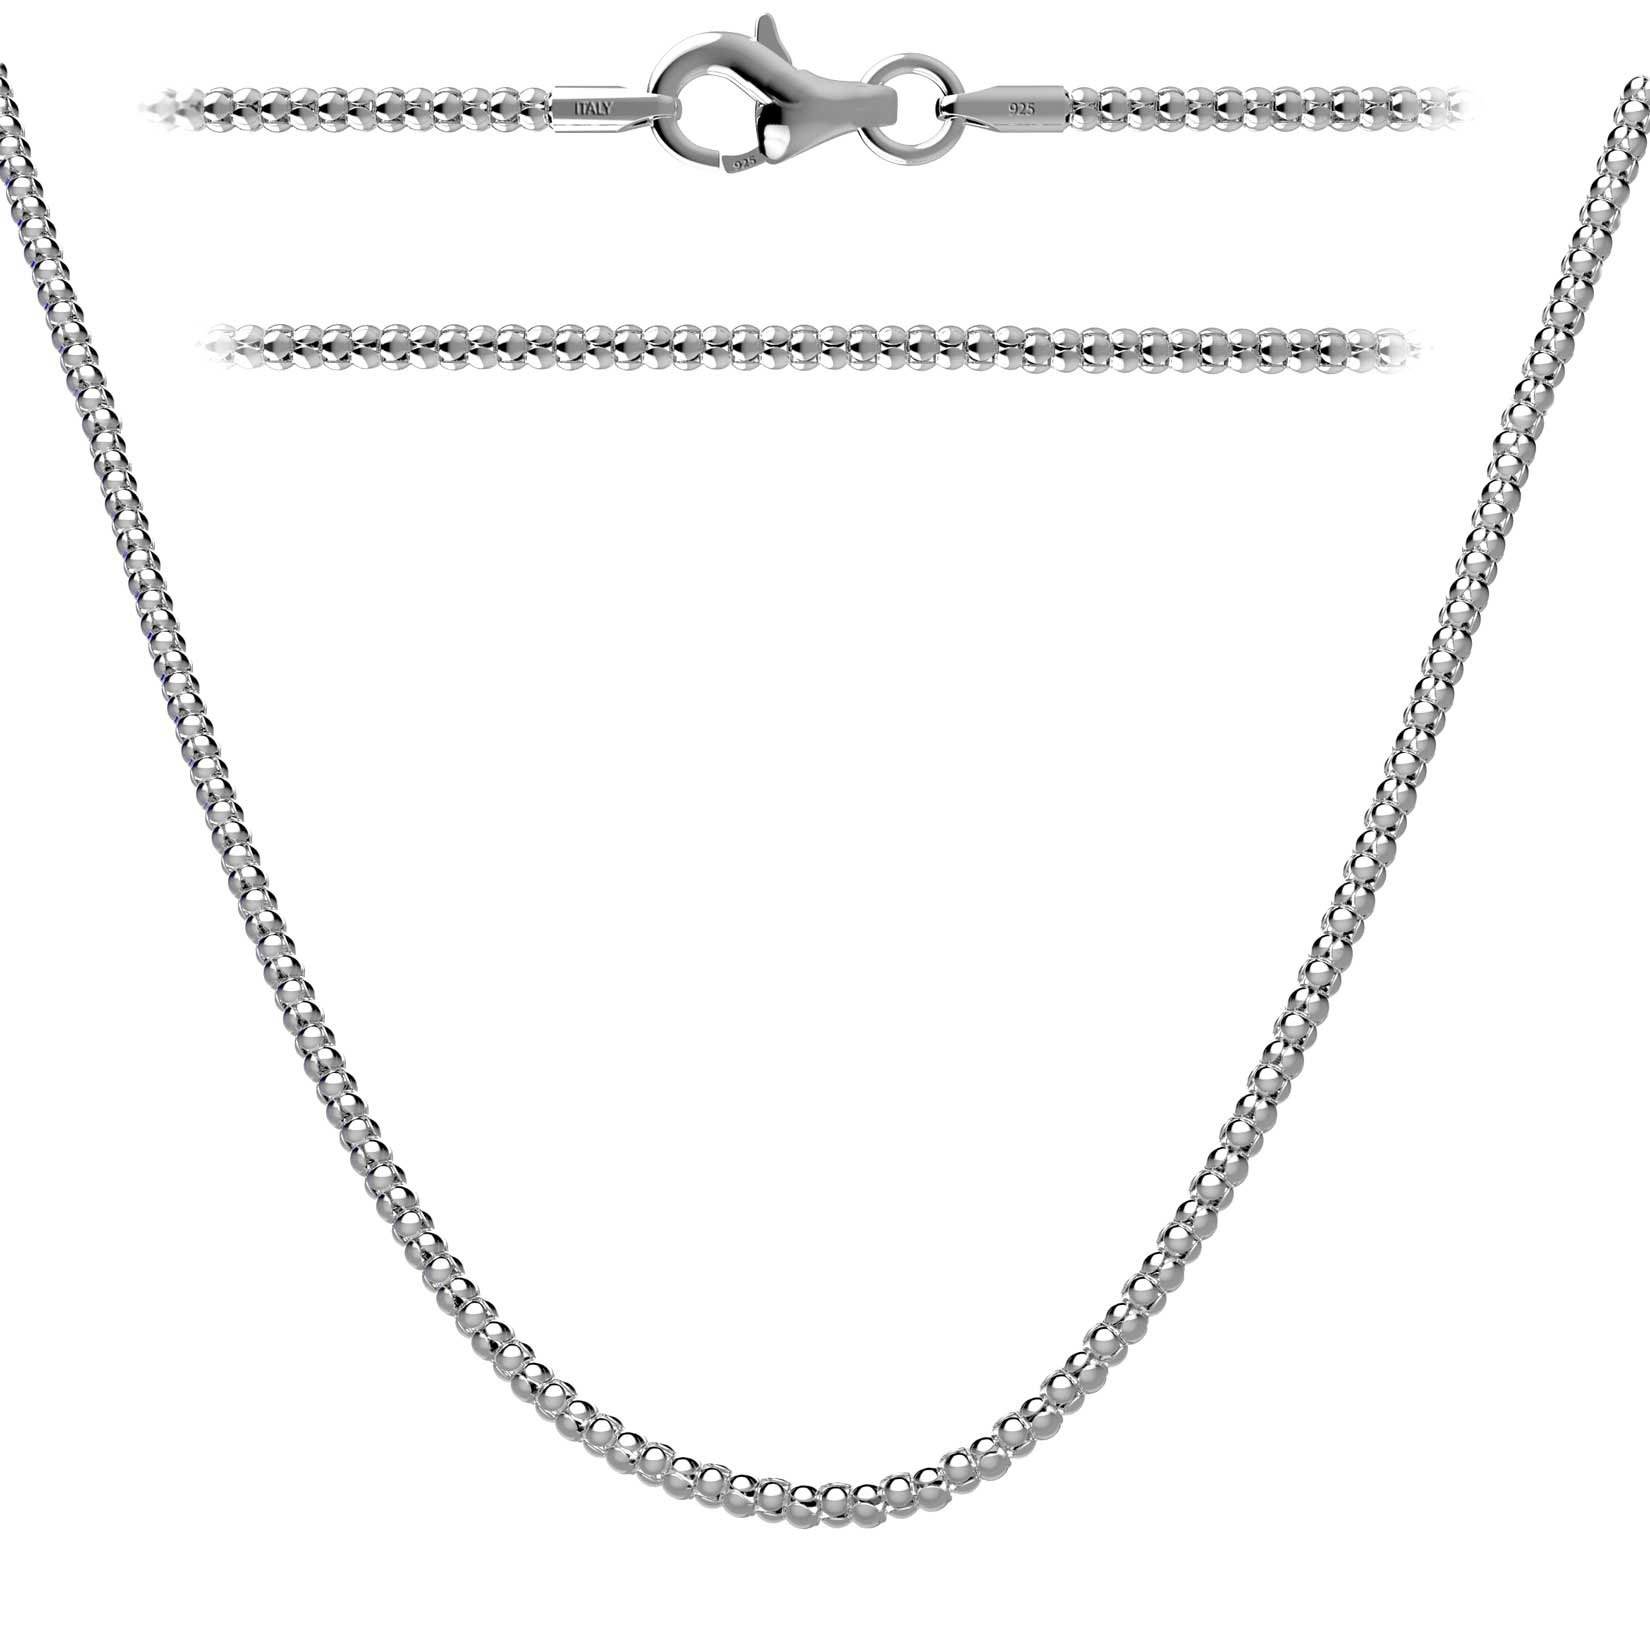 Kezef Solid 1.6mm Italian Sterling Silver Popcorn Chain Necklace 20'' in with Lobster Clasp Closure